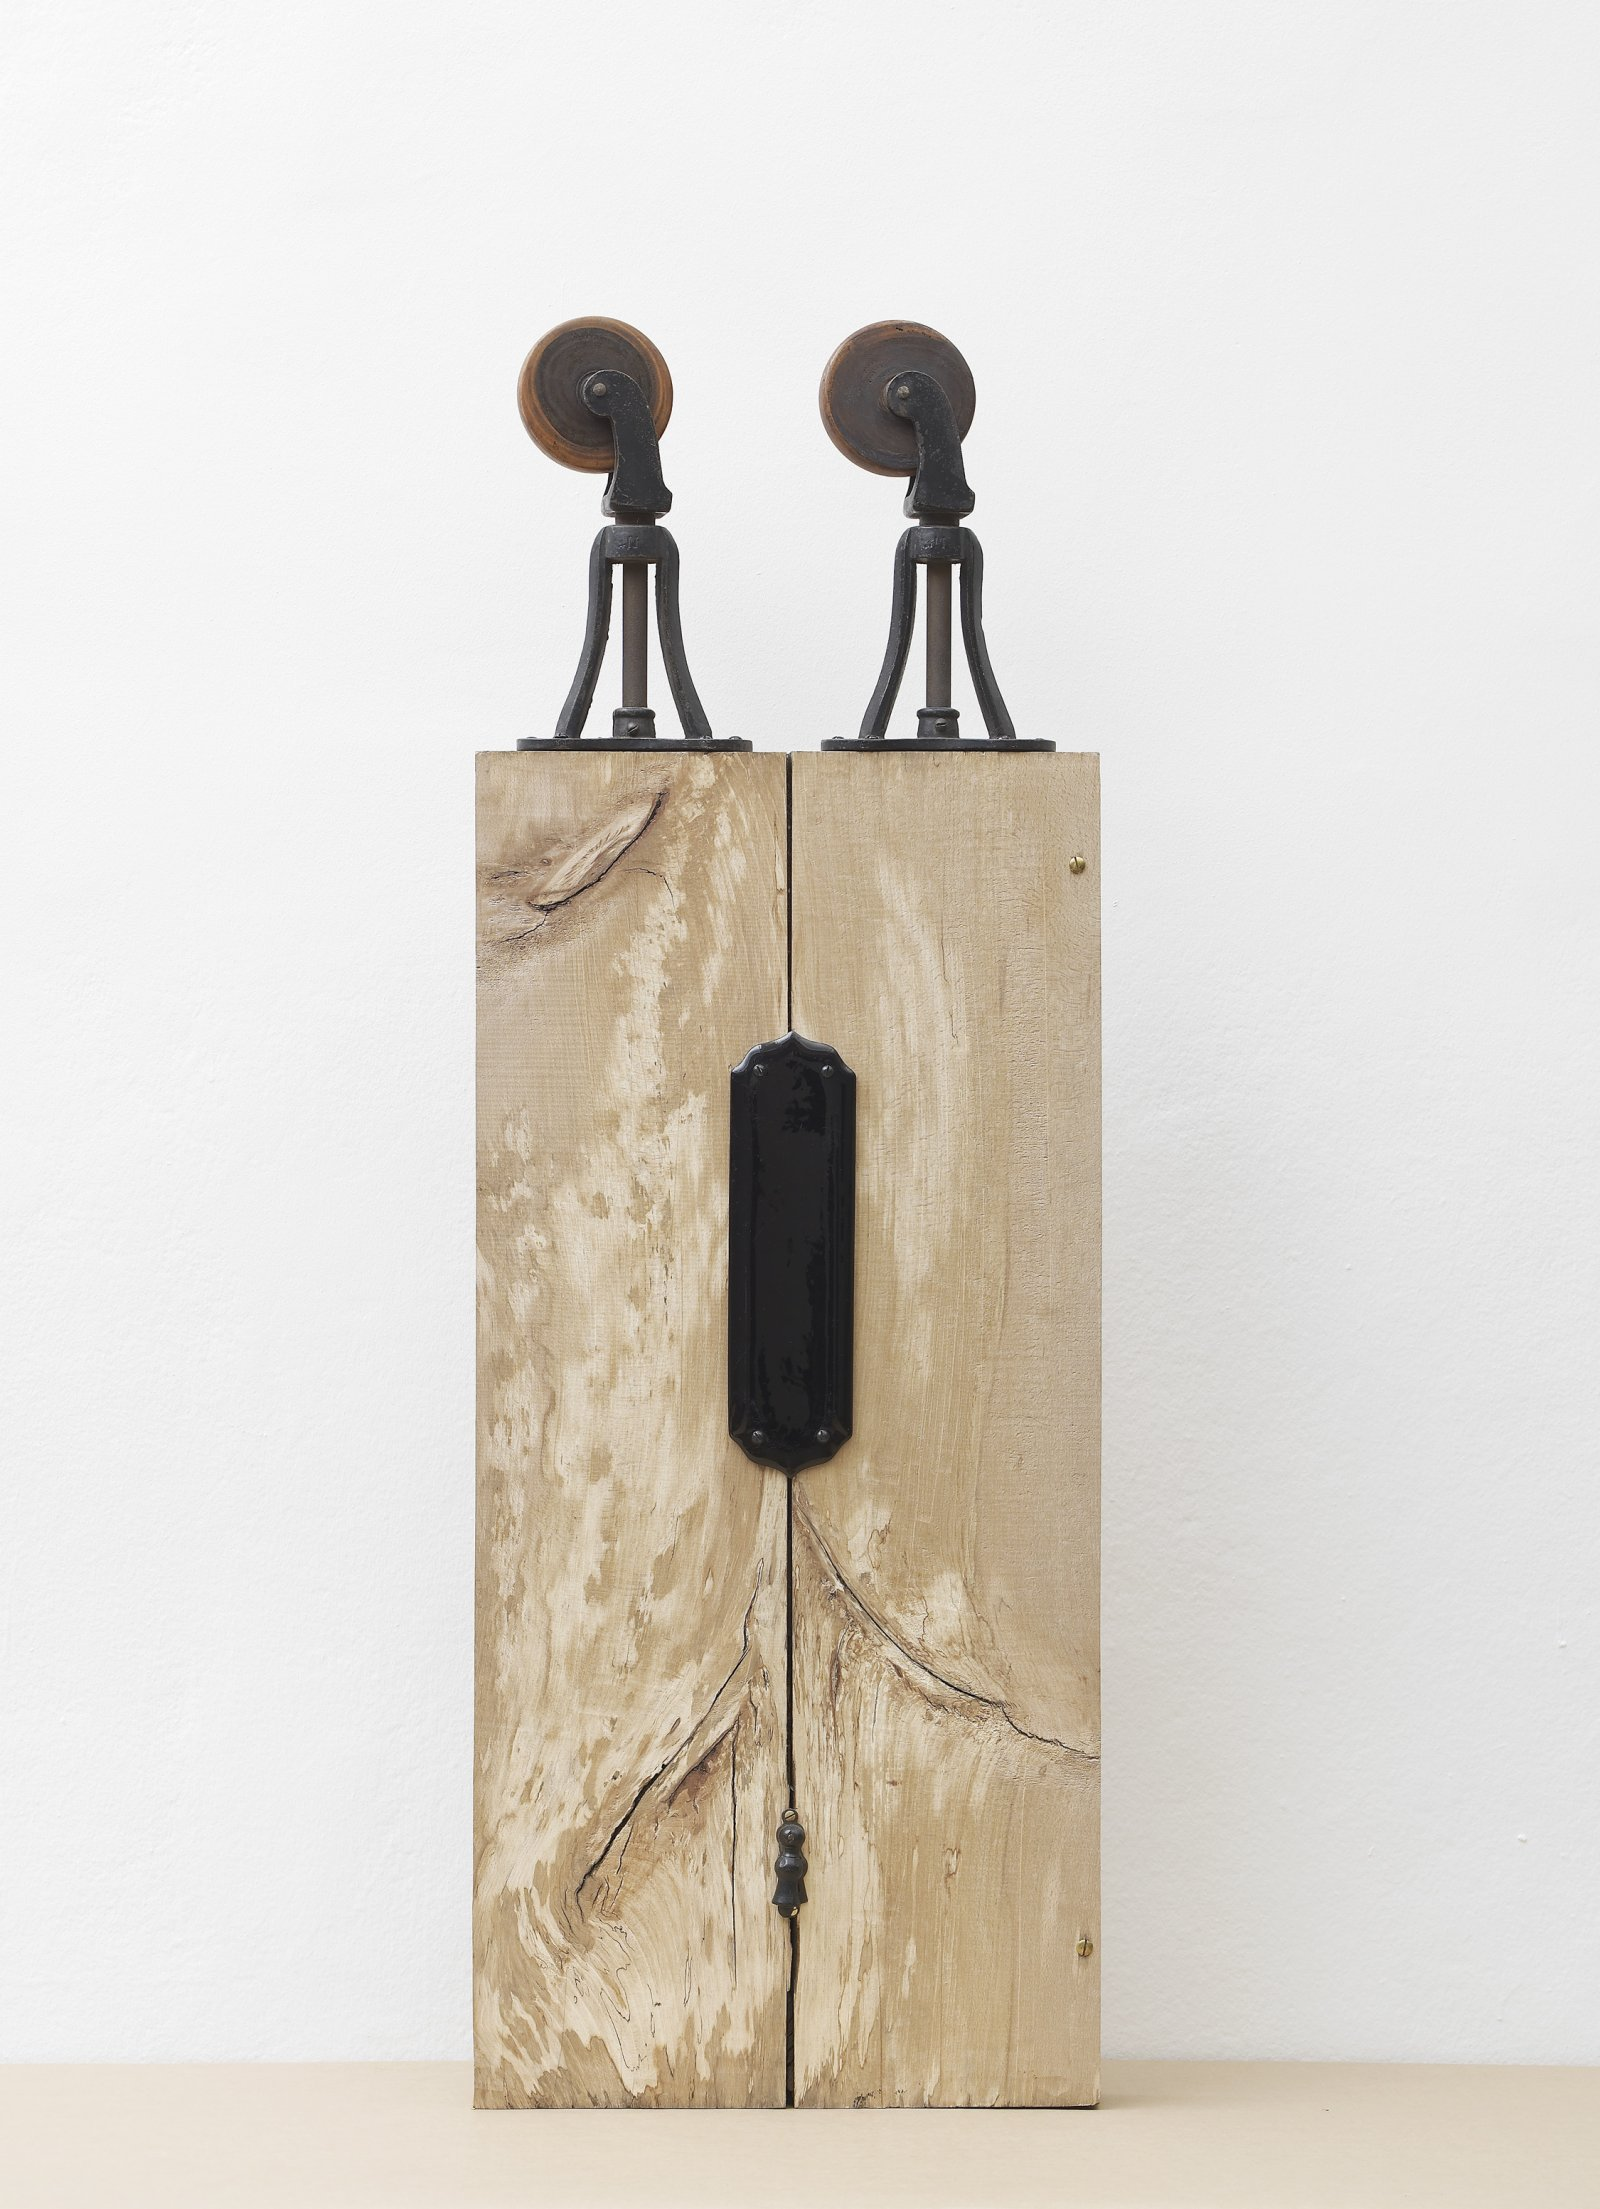 Christina Mackie, Trestle Person III, 2012, cast iron, wood, ceramics, brass, 46 x 16 x 3 in. (116 x 39 x 6 cm). Installation view, Painting the Weights, Chisenhale Gallery, London, UK, 2012 by Christina Mackie